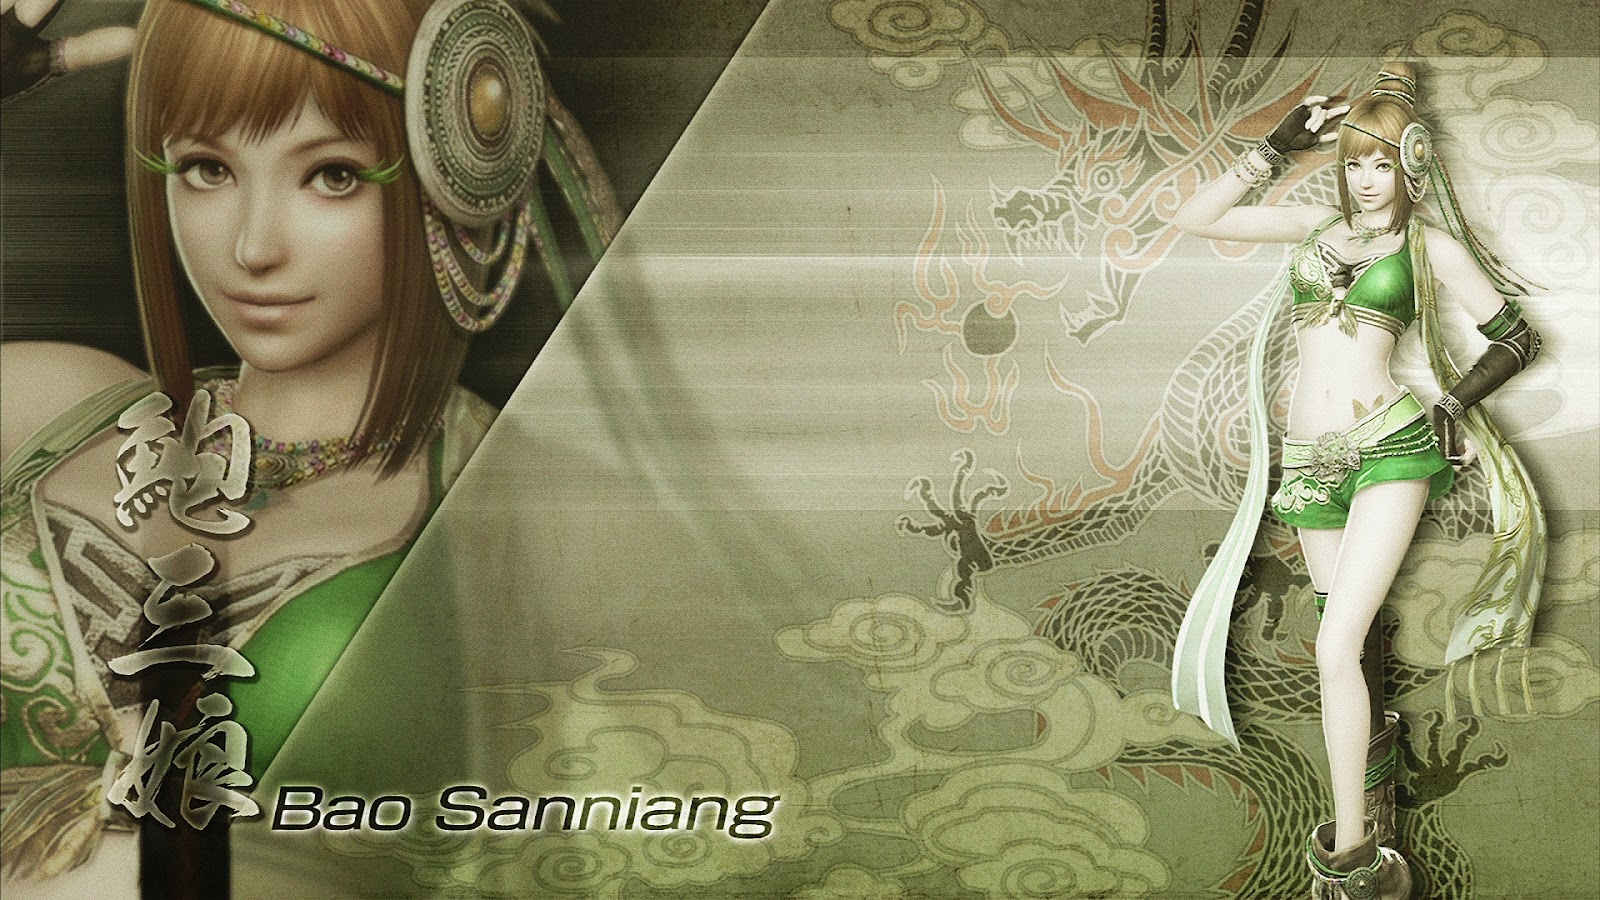 http://3.bp.blogspot.com/-YibMhMmJ-zc/UBVTfi_sD4I/AAAAAAAAE_M/tHPSwR1iSFs/s1600/dynasty+warriors+7+wallpapers+1.jpg